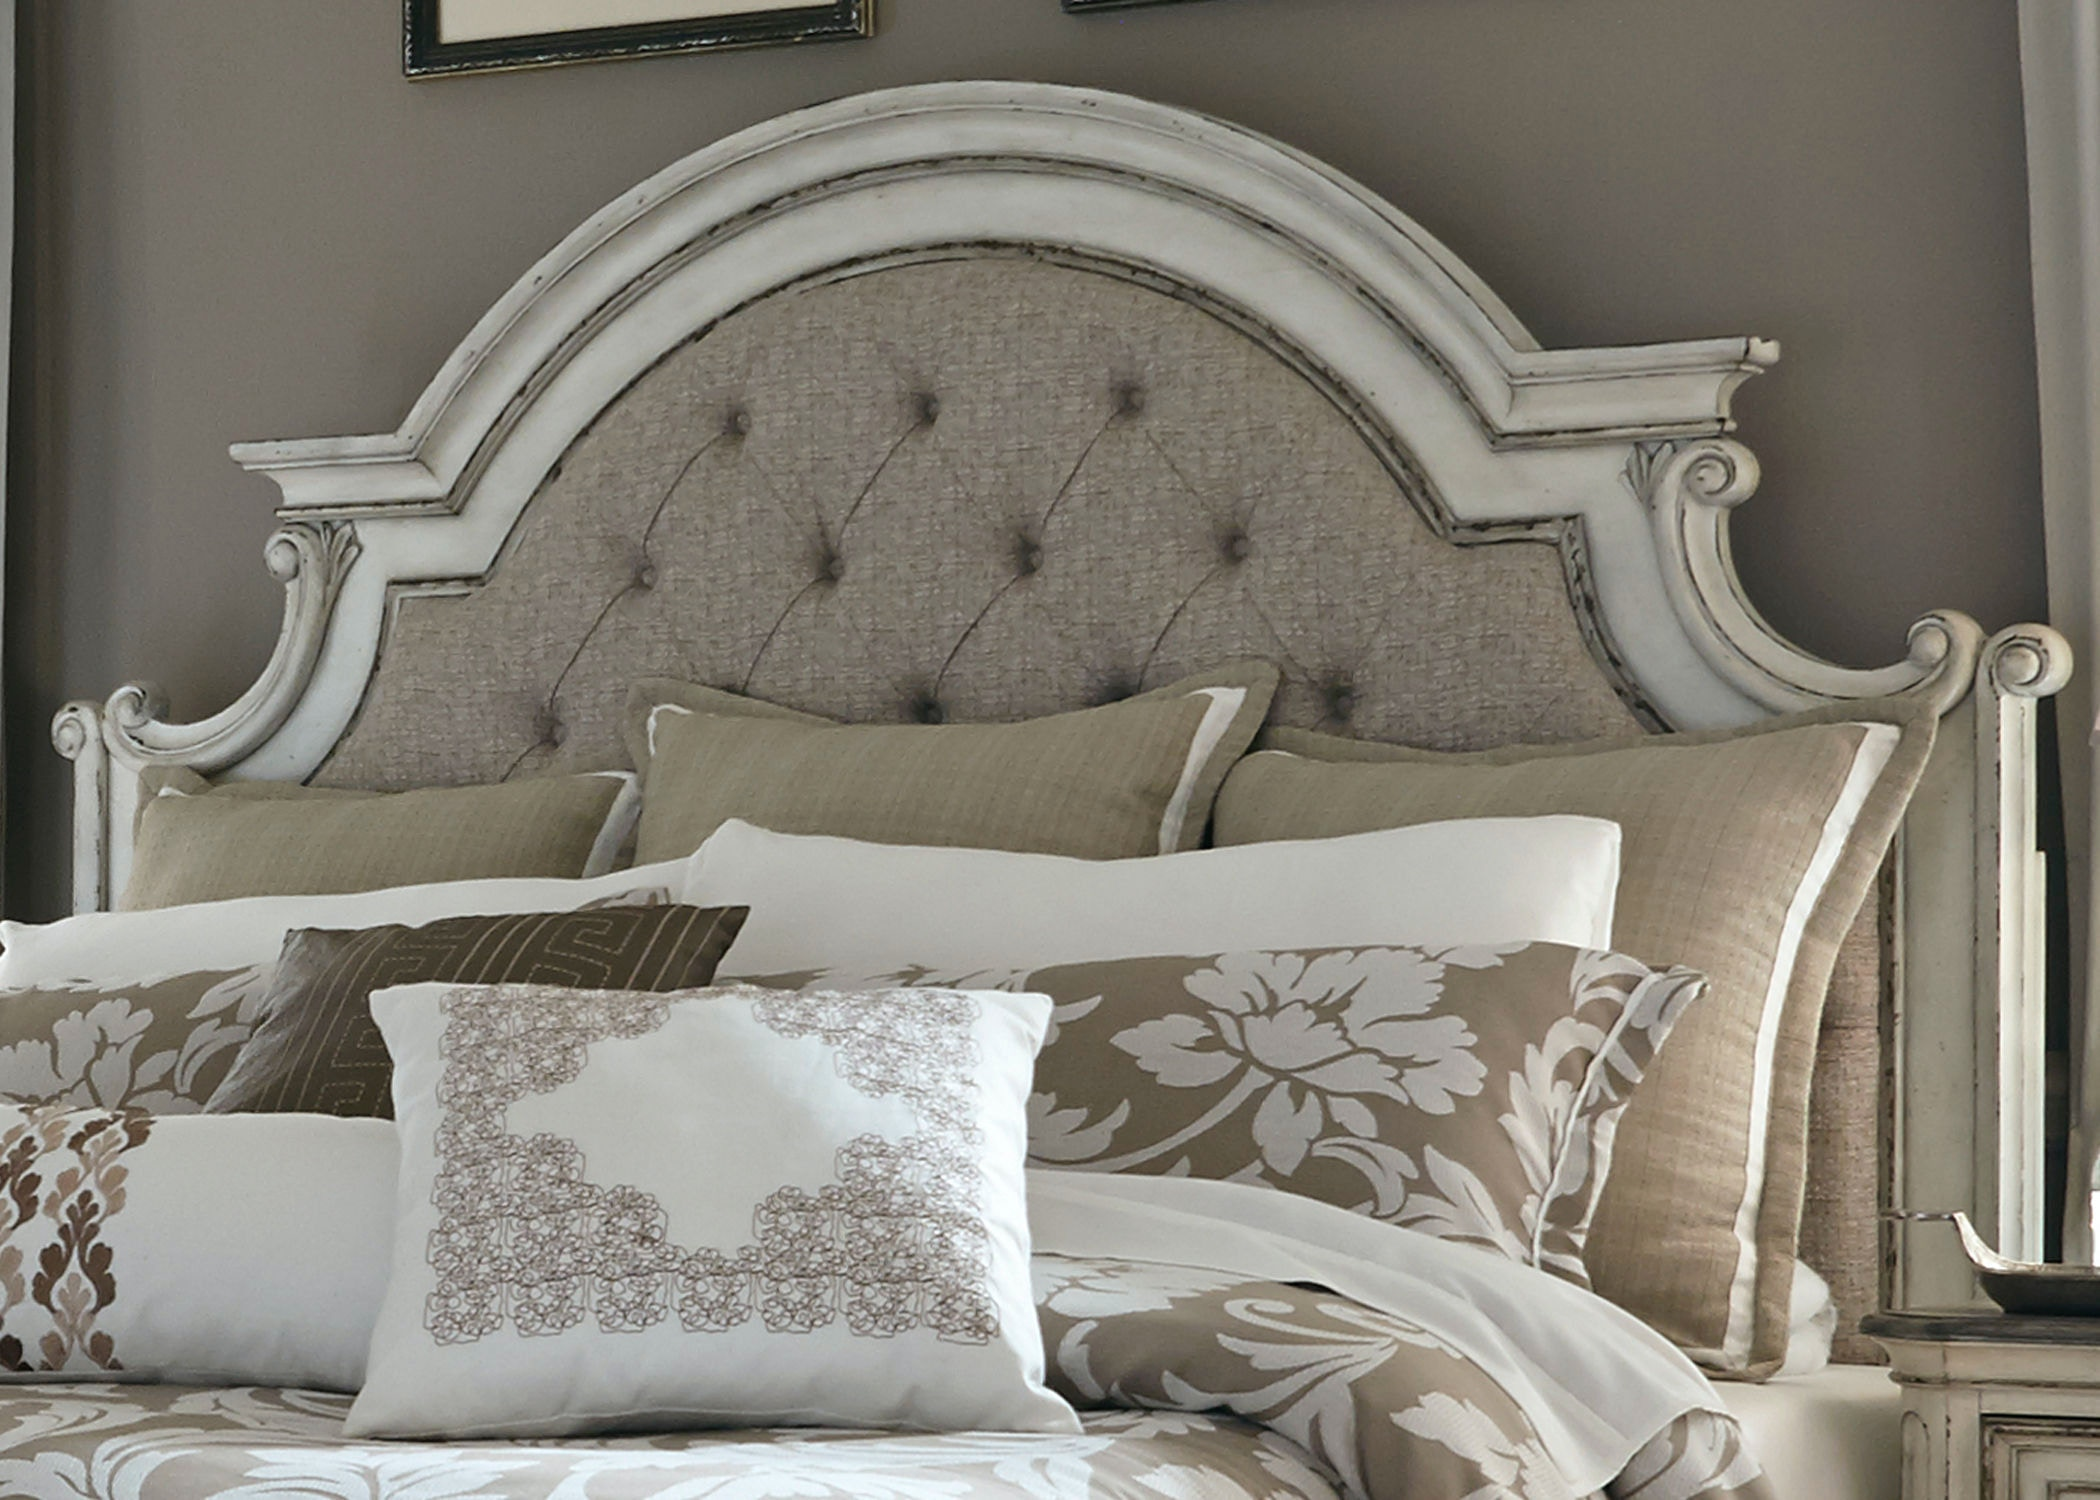 Liberty Furniture Bedroom King Uph Panel Headboard 244 BR15HU At B.F. Myers  Furniture